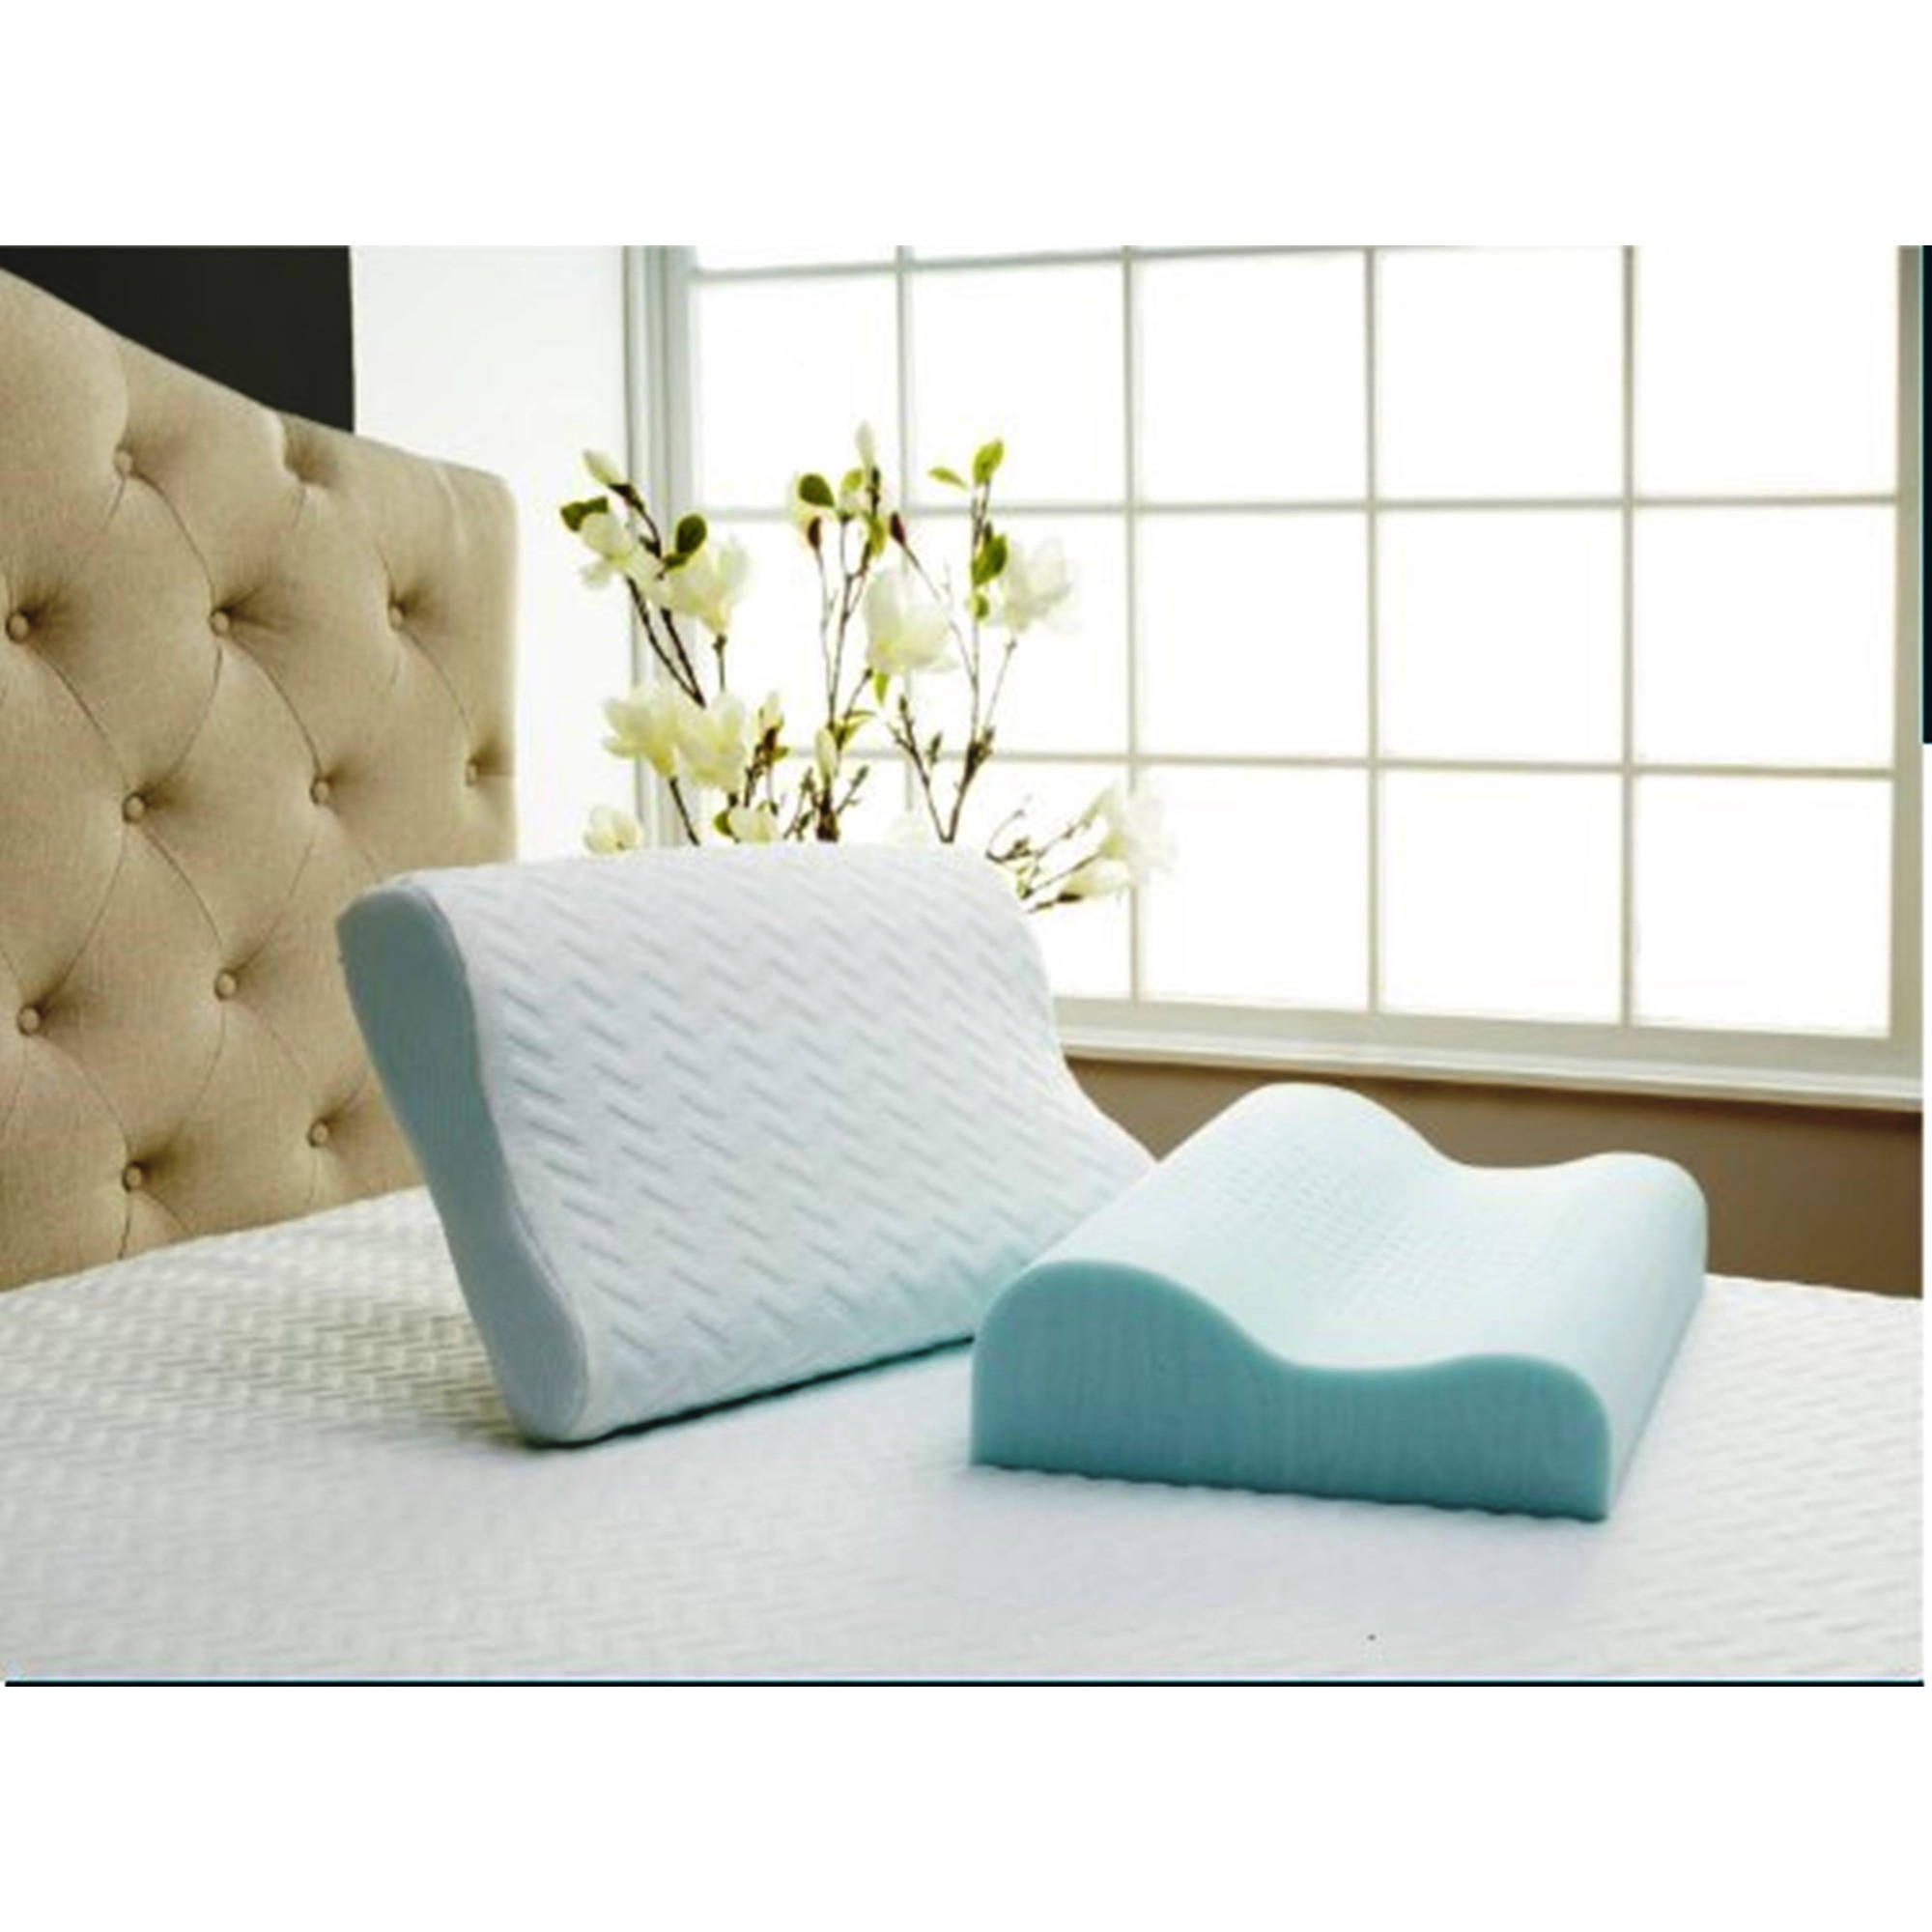 isotonic serene comforttech foam pillow traditional side sleeper or contour